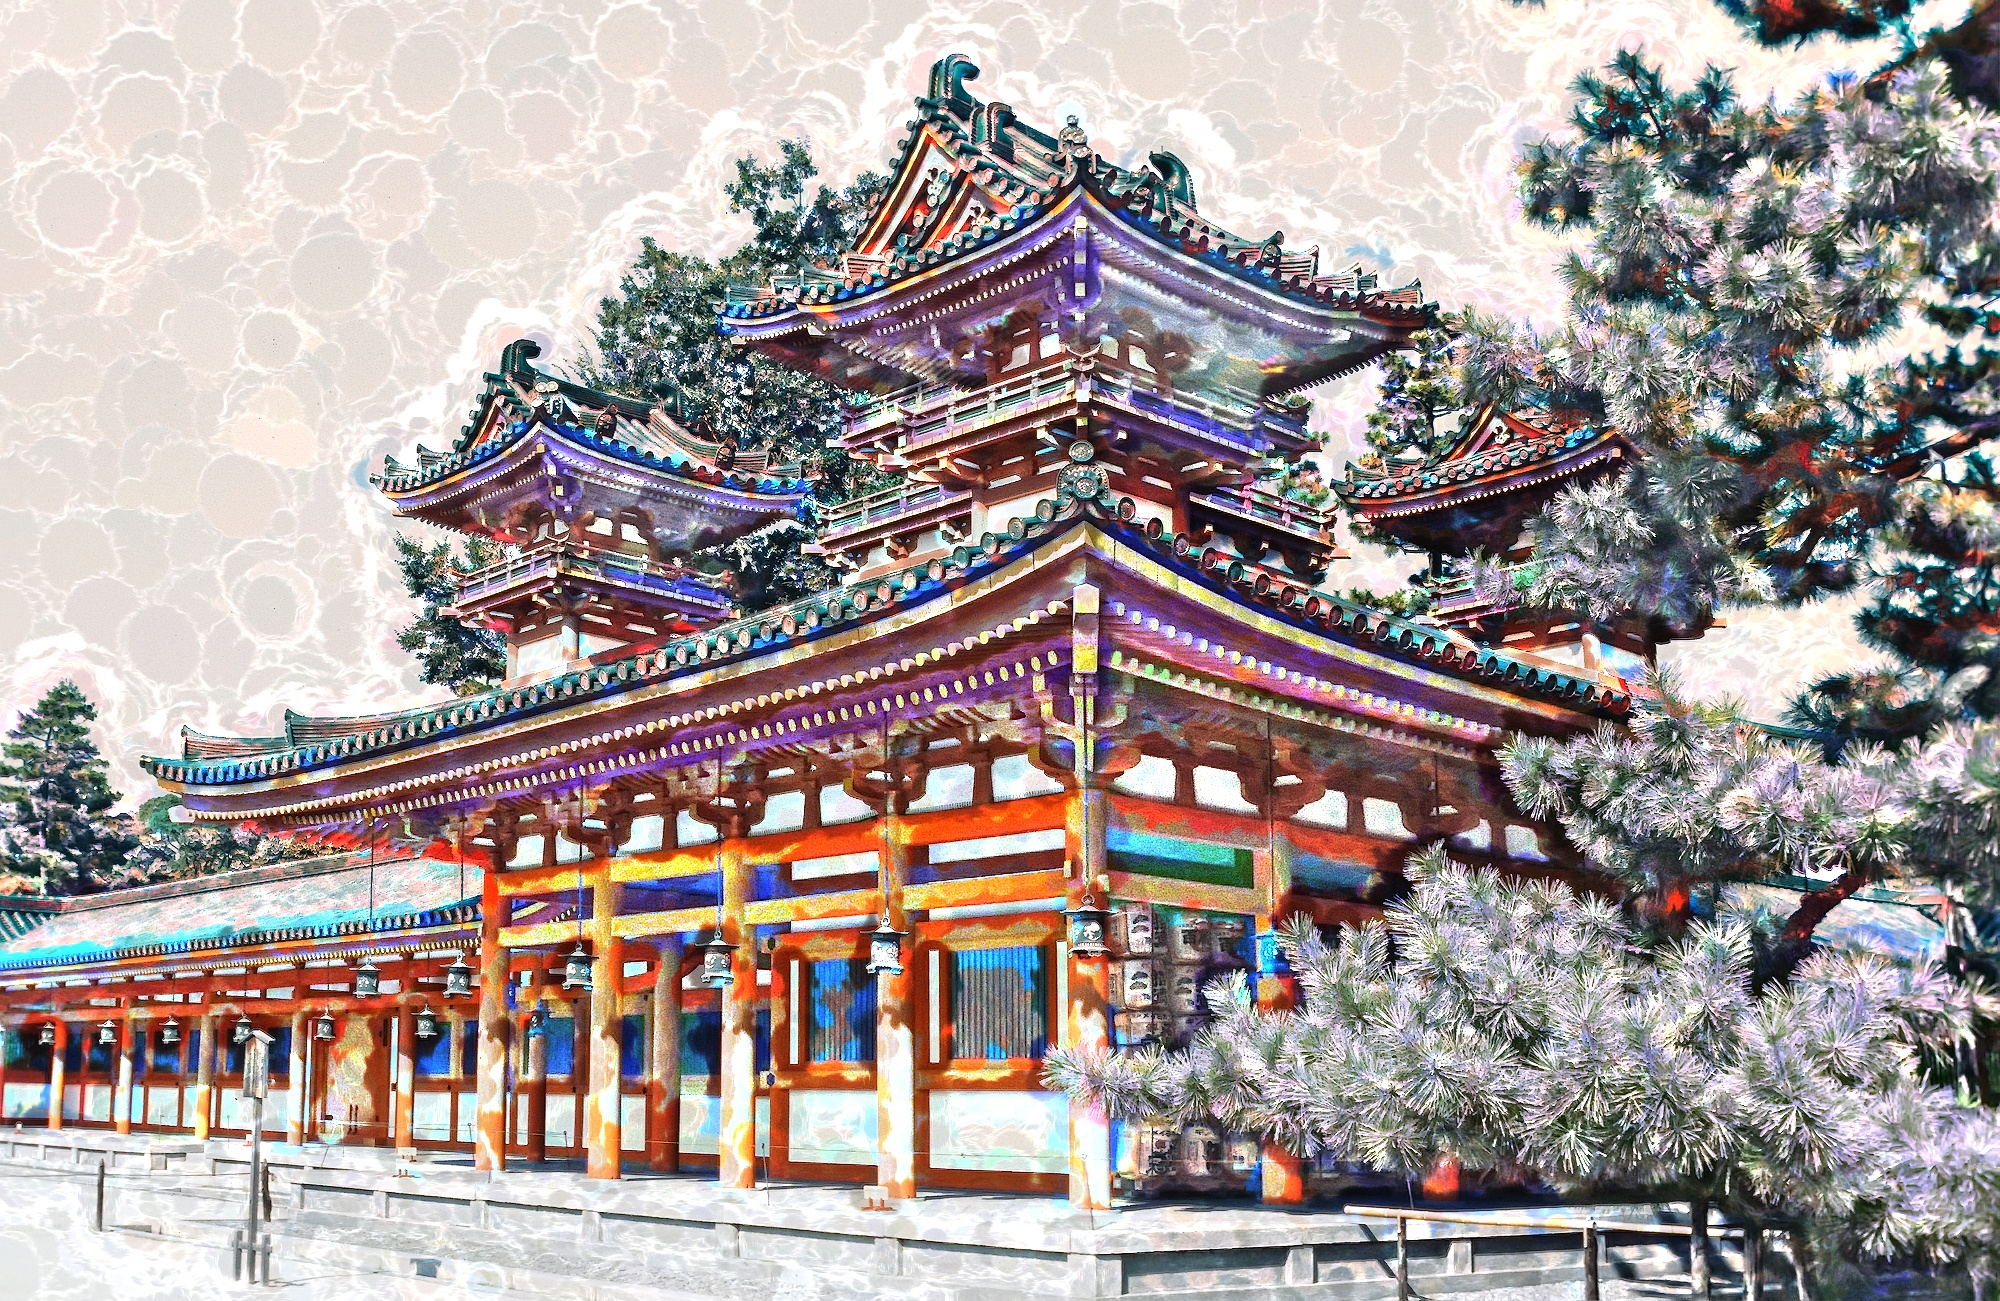 Heian Shrine Enchanted by Herbert Stachelberger